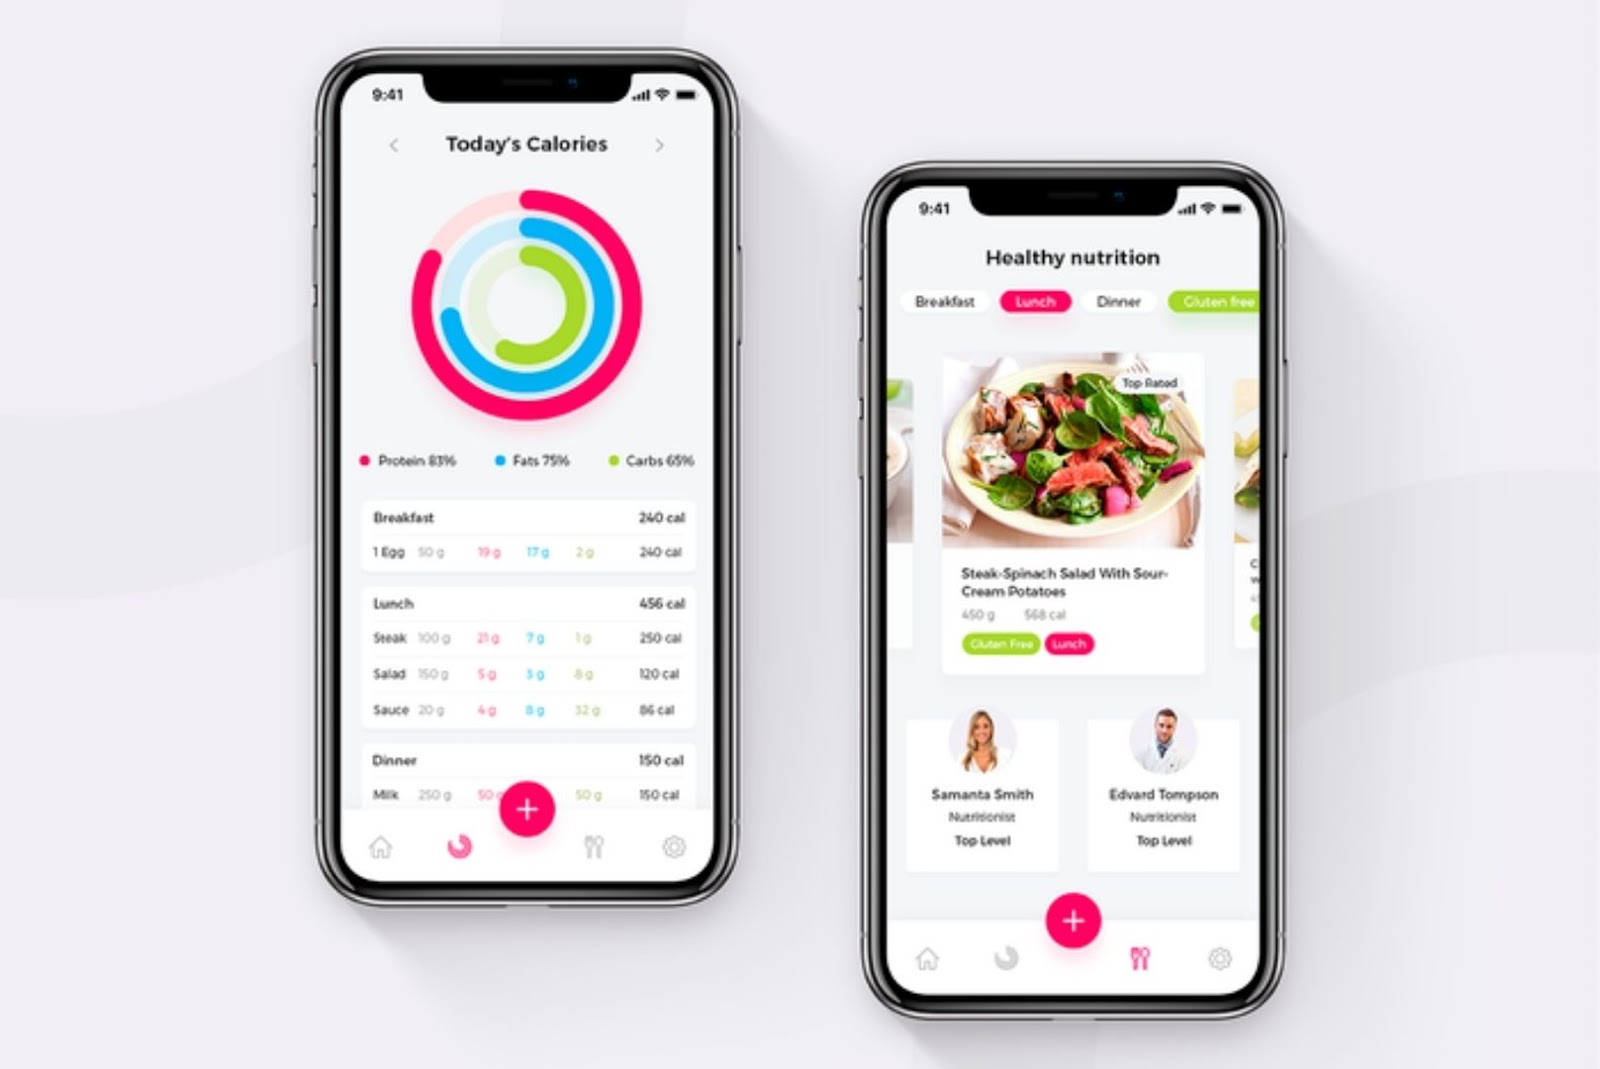 App idea nutritional details of a dish or a food item